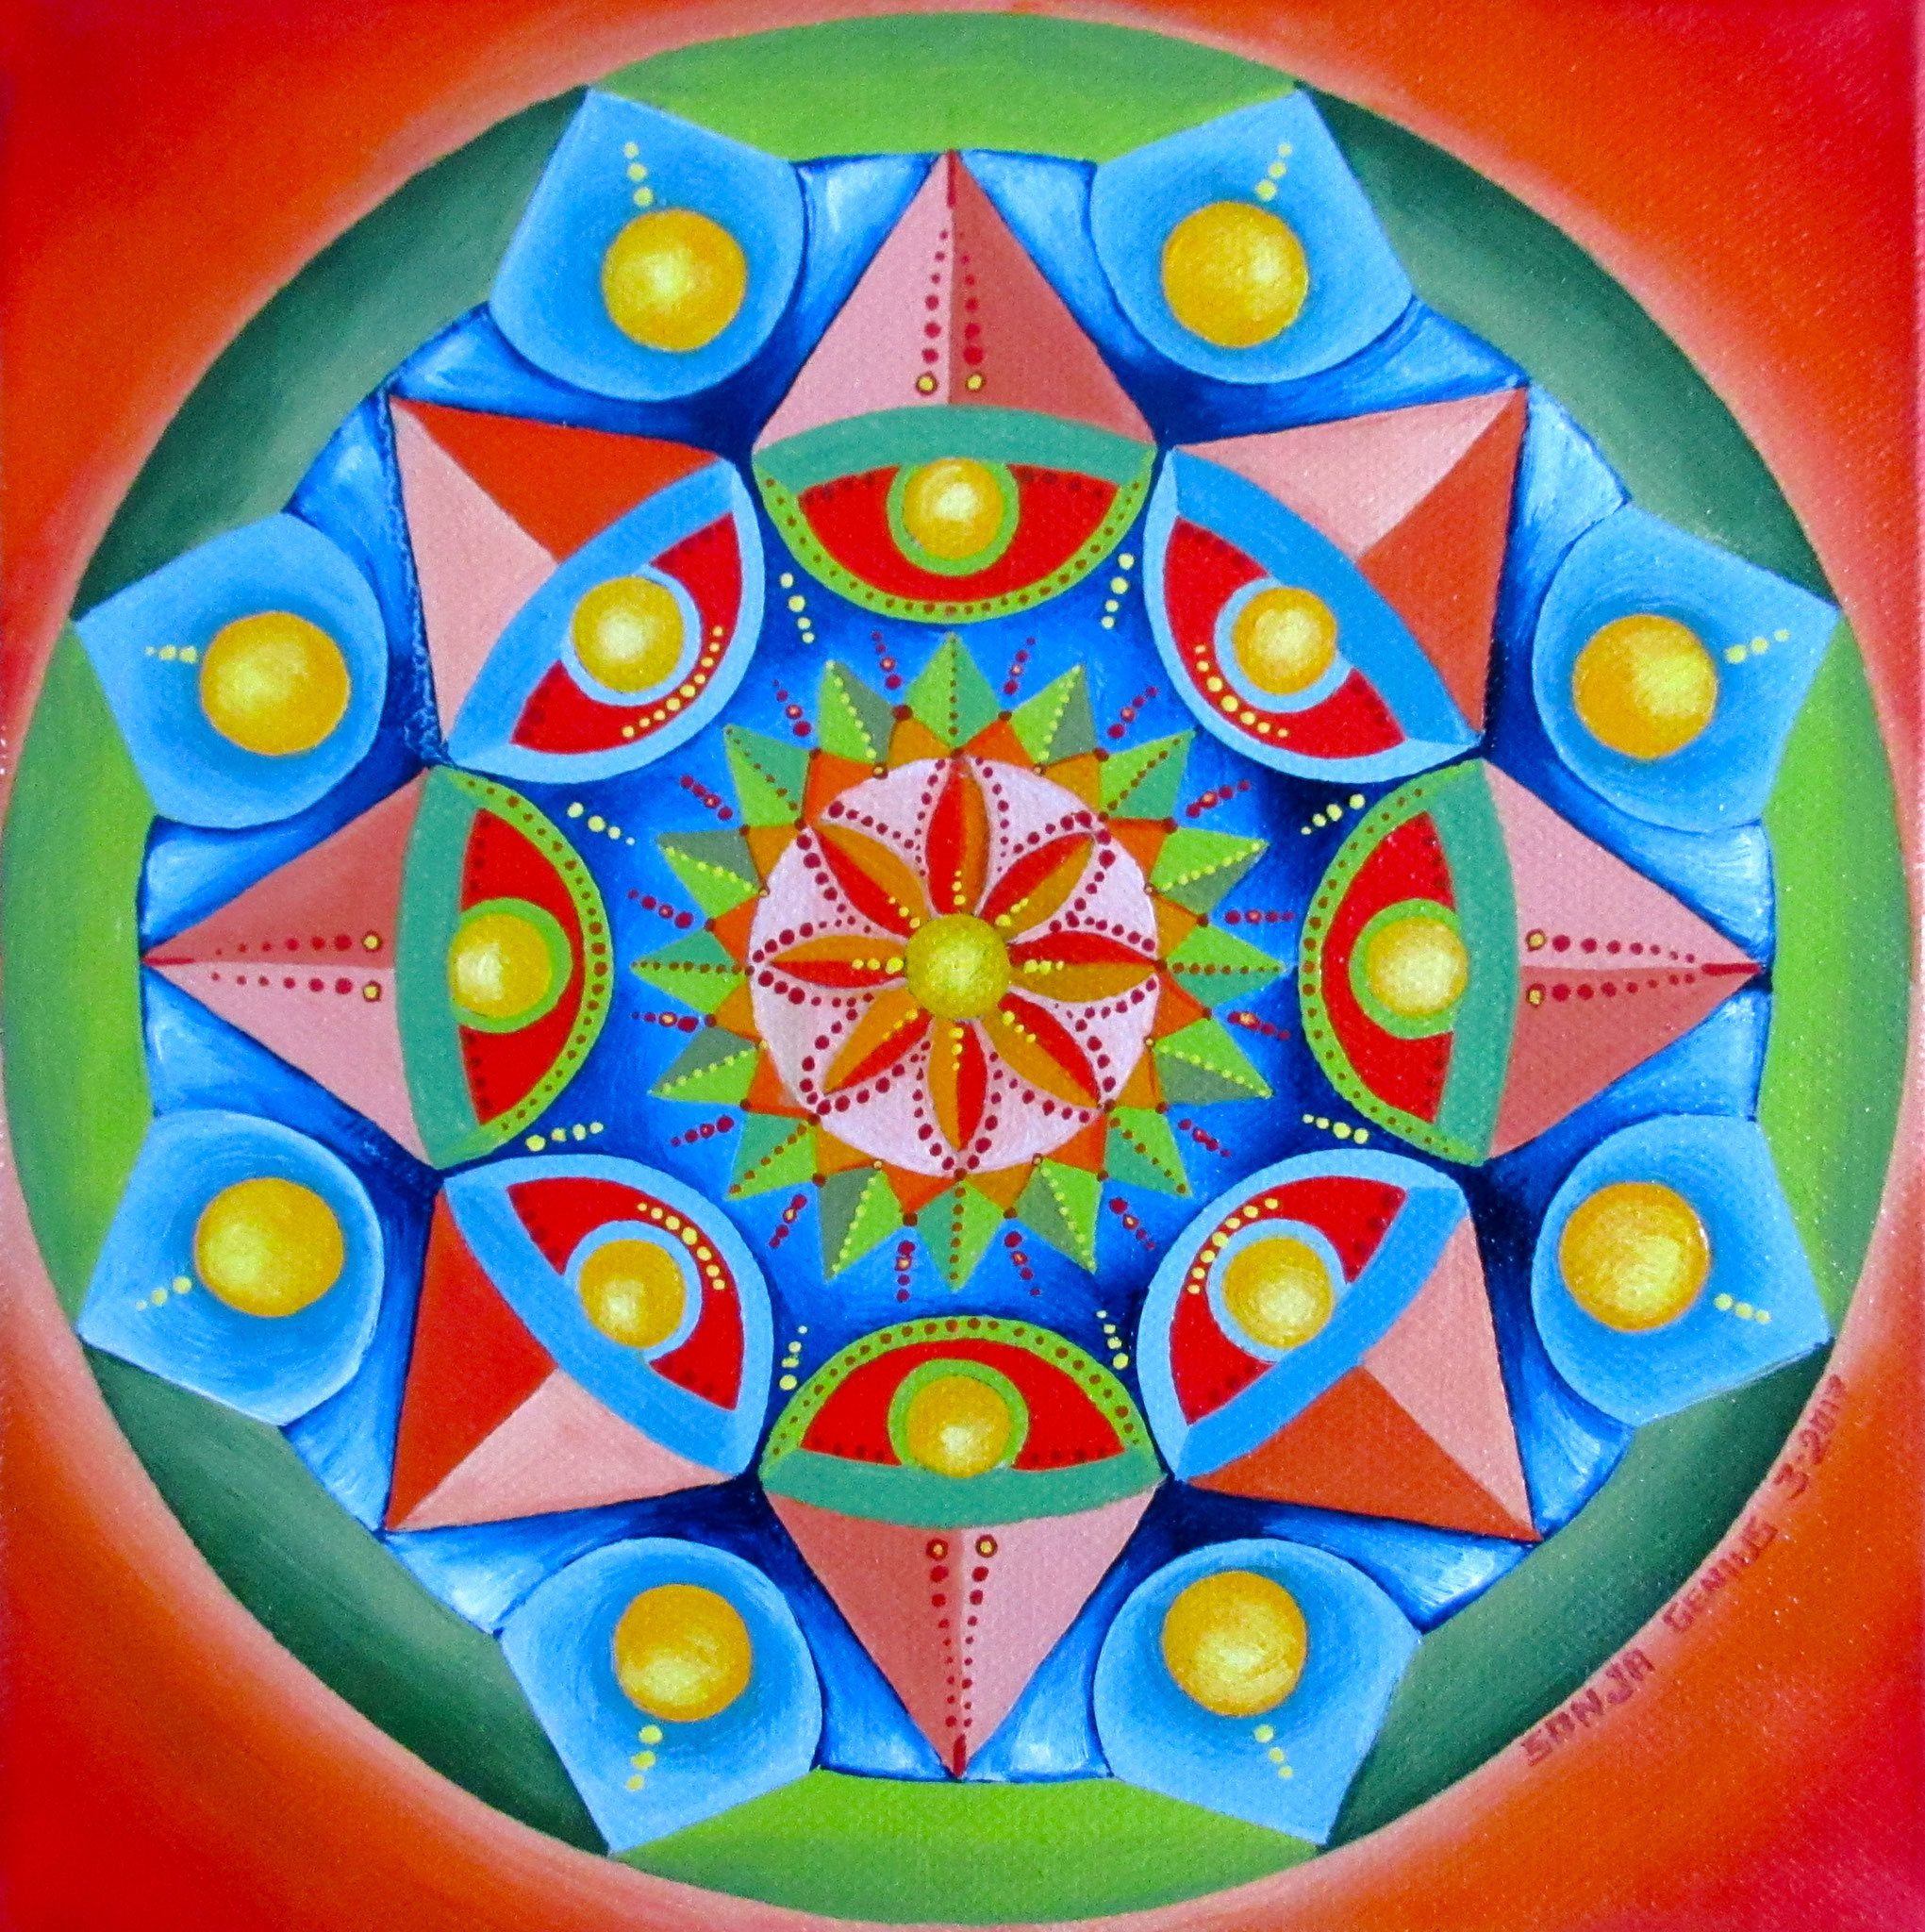 Hex Mandala I, oil on canvas 8x8, March 2017 (-1)